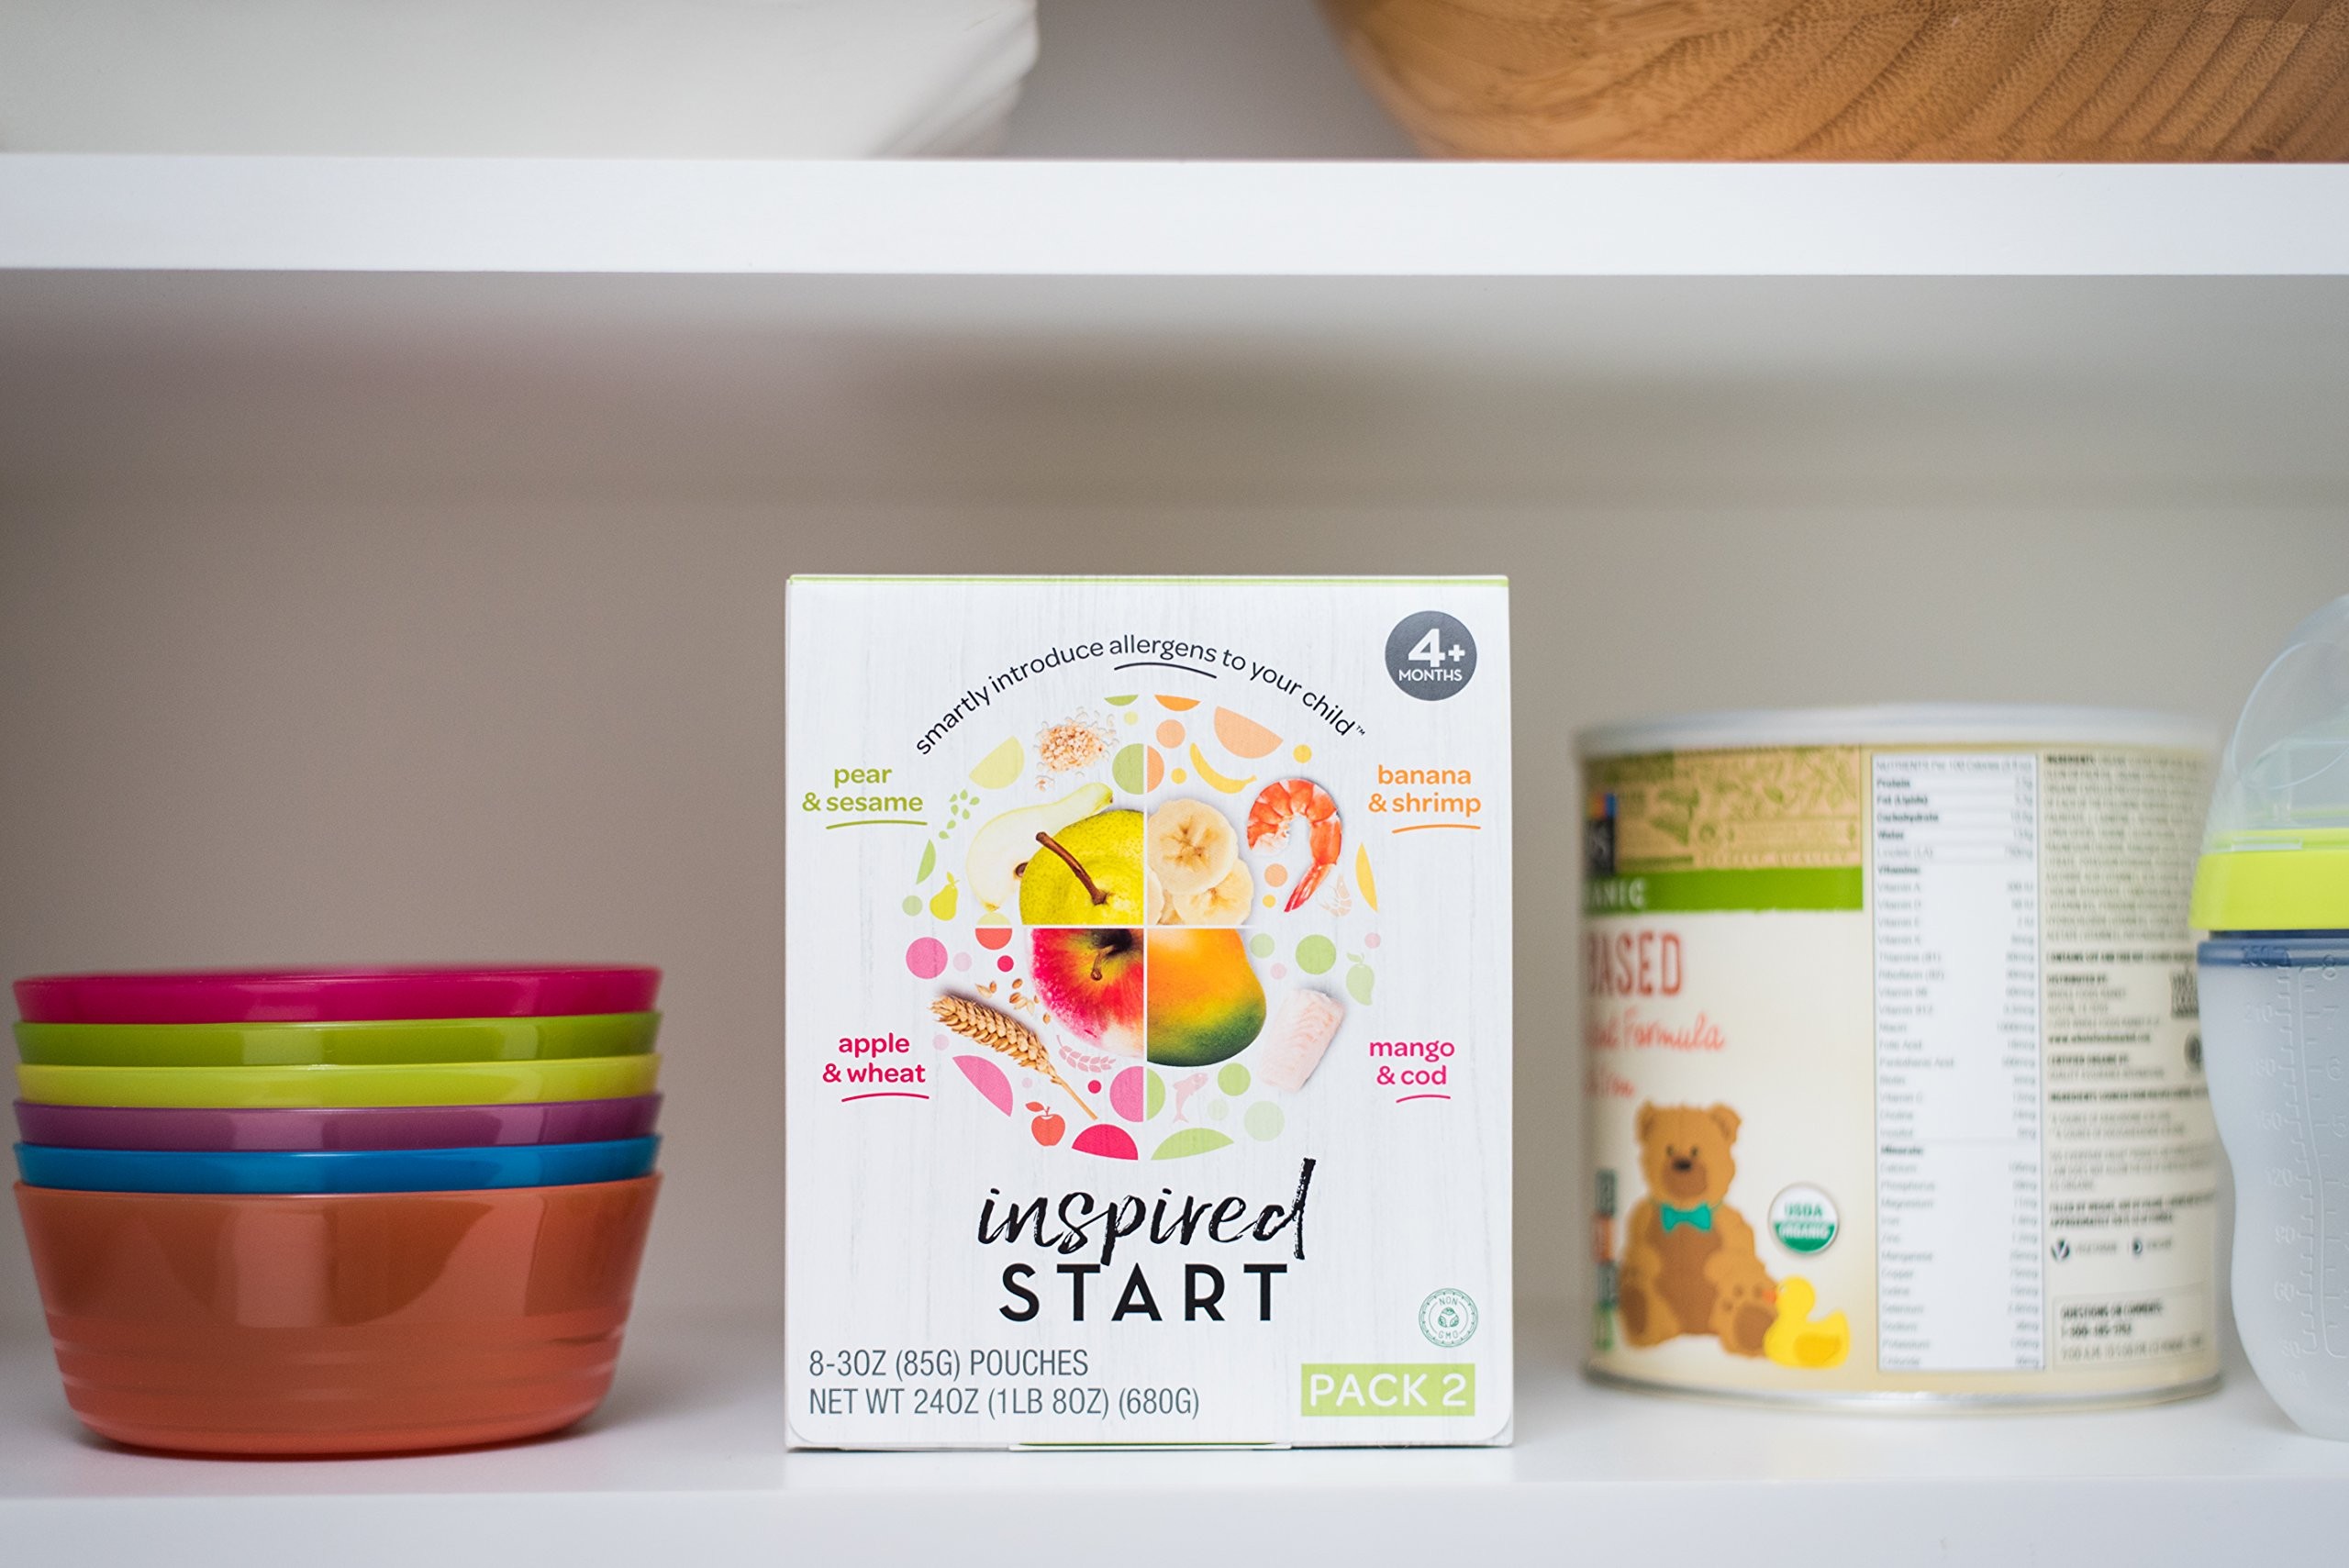 Early Allergen Introduction Baby Food: Inspired Start Pack 2, 3 oz. (Pack of 8 baby food pouches) - Non-GMO, include wheat, sesame, shrimp and cod in baby's diet by Inspired Start (Image #5)